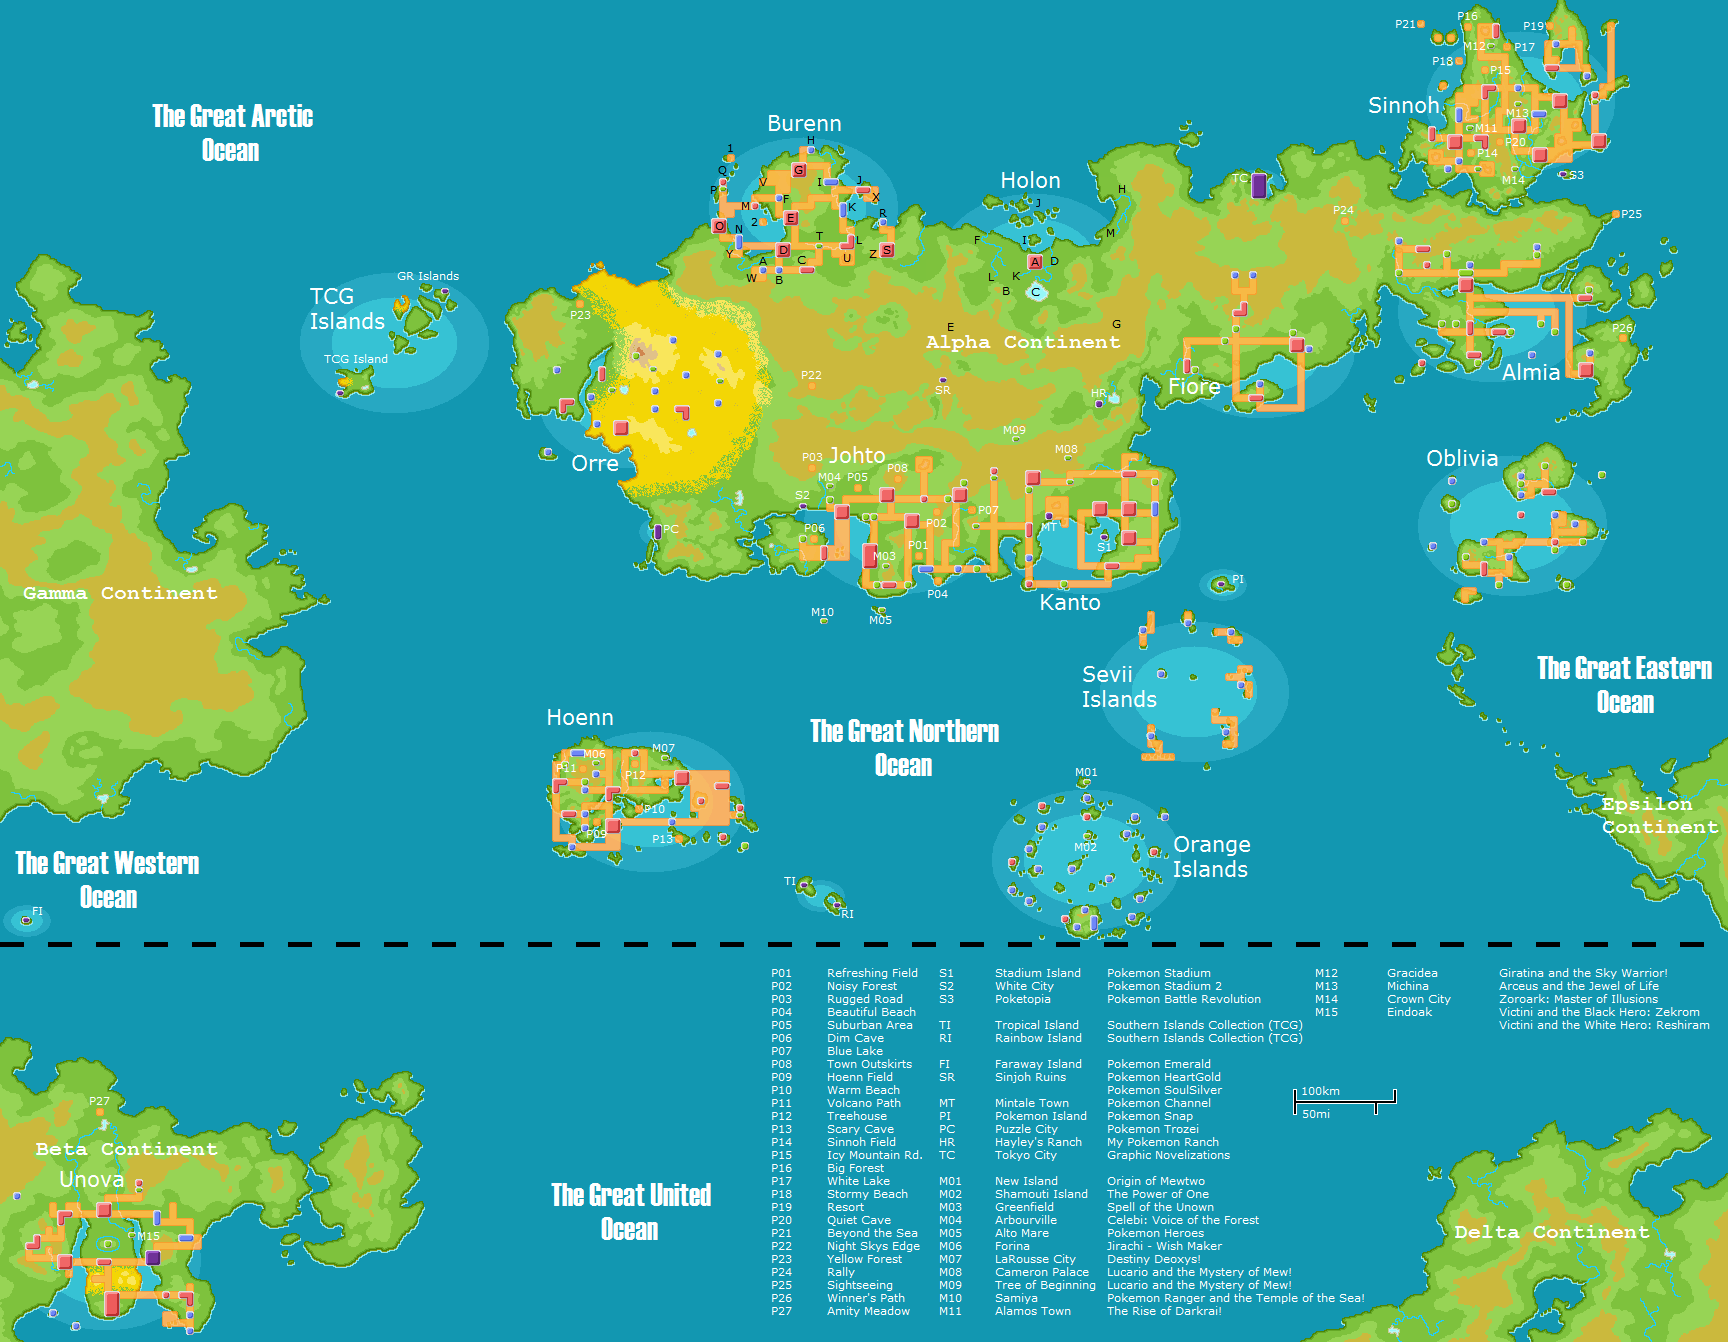 Maps favourites by twila101 on deviantart pokemon maps favourites by twila101 on deviantart gumiabroncs Image collections